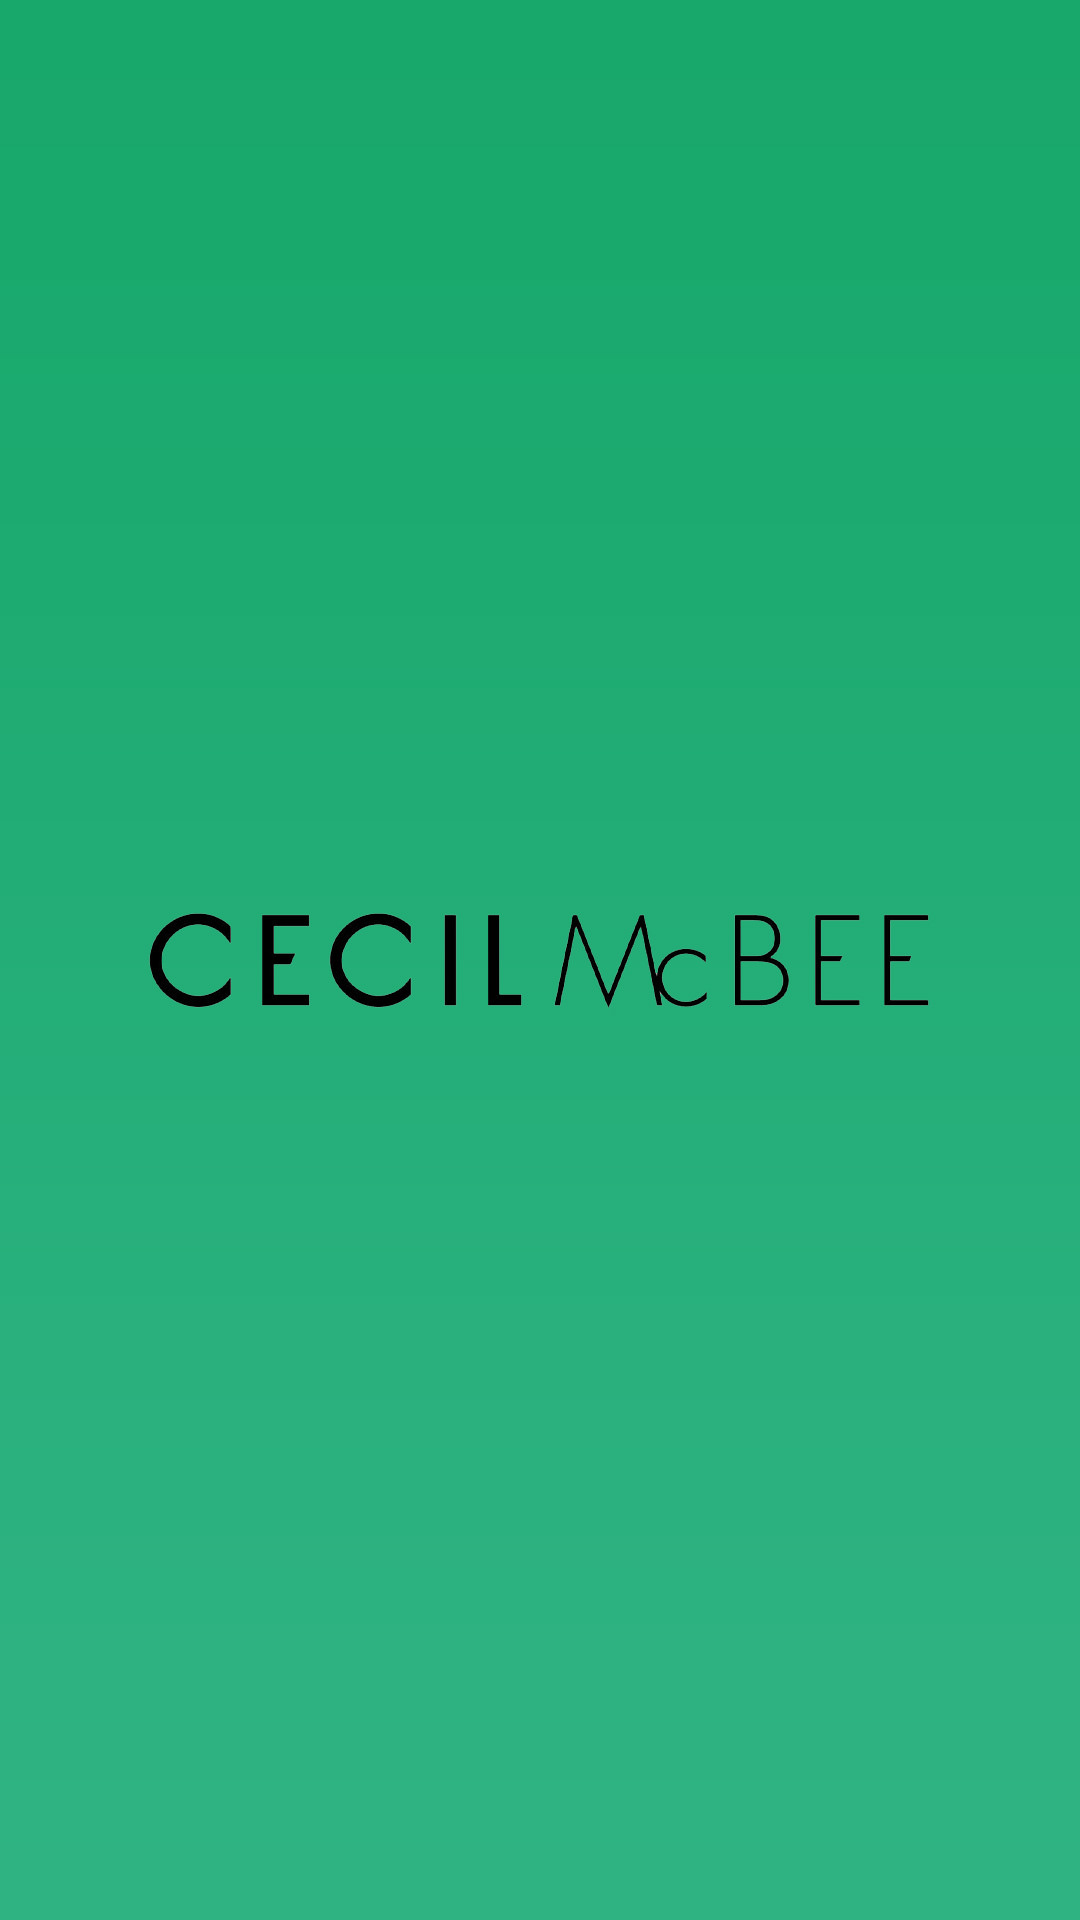 cecil00010 - セシルマクビー[CECIL McBEE]の高画質スマホ壁紙23枚 [iPhone&Androidに対応]